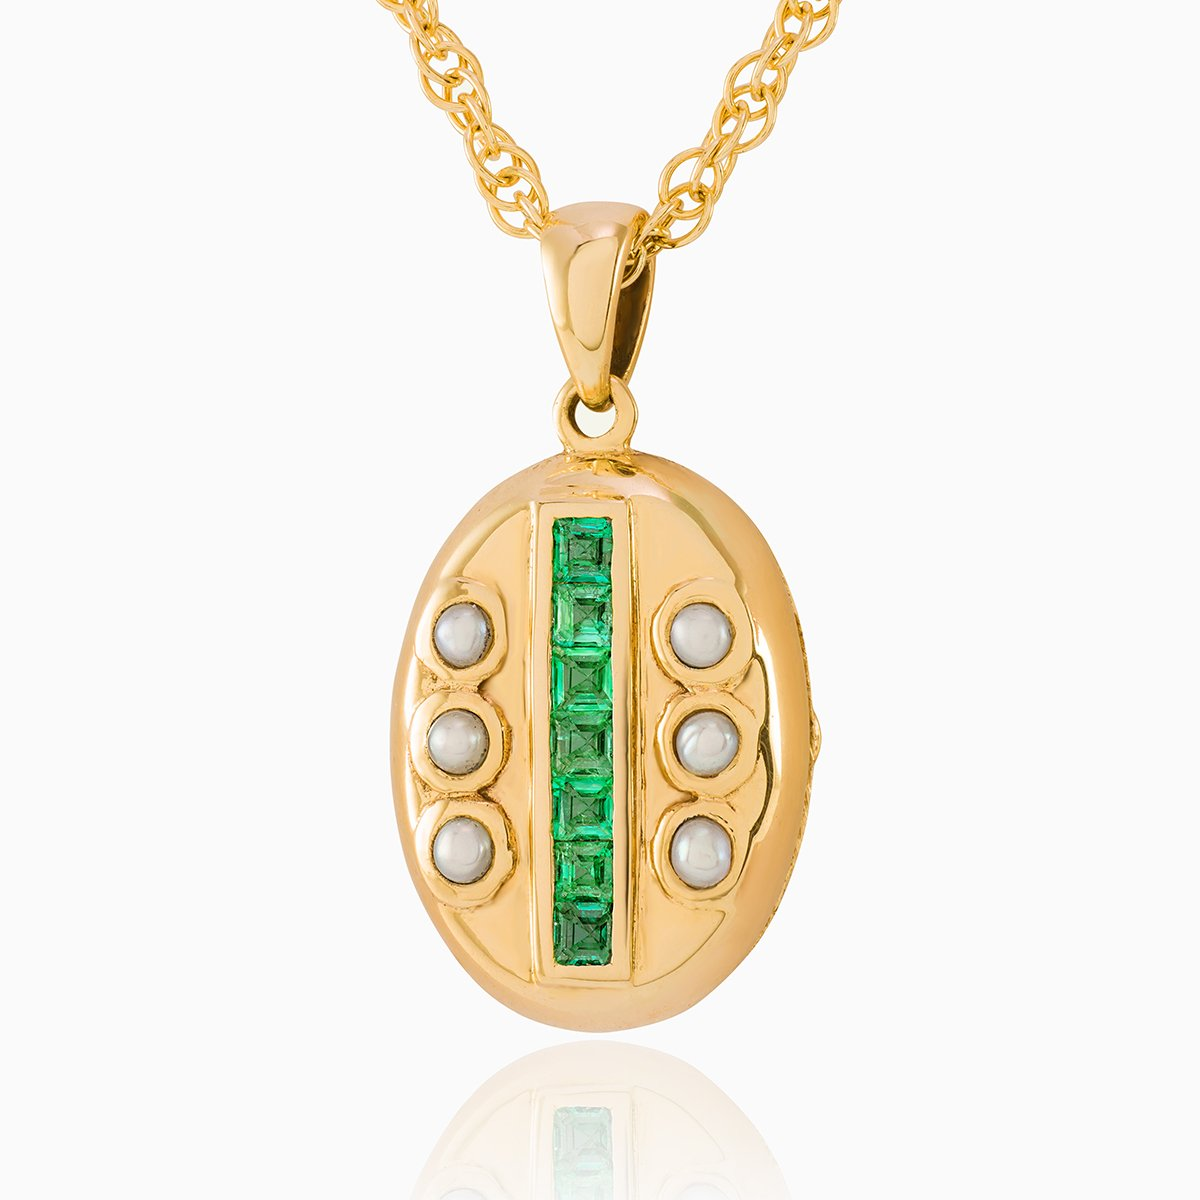 Product title: Dainty Victorian Emerald and Pearl Keepsake Locket, product type: Locket